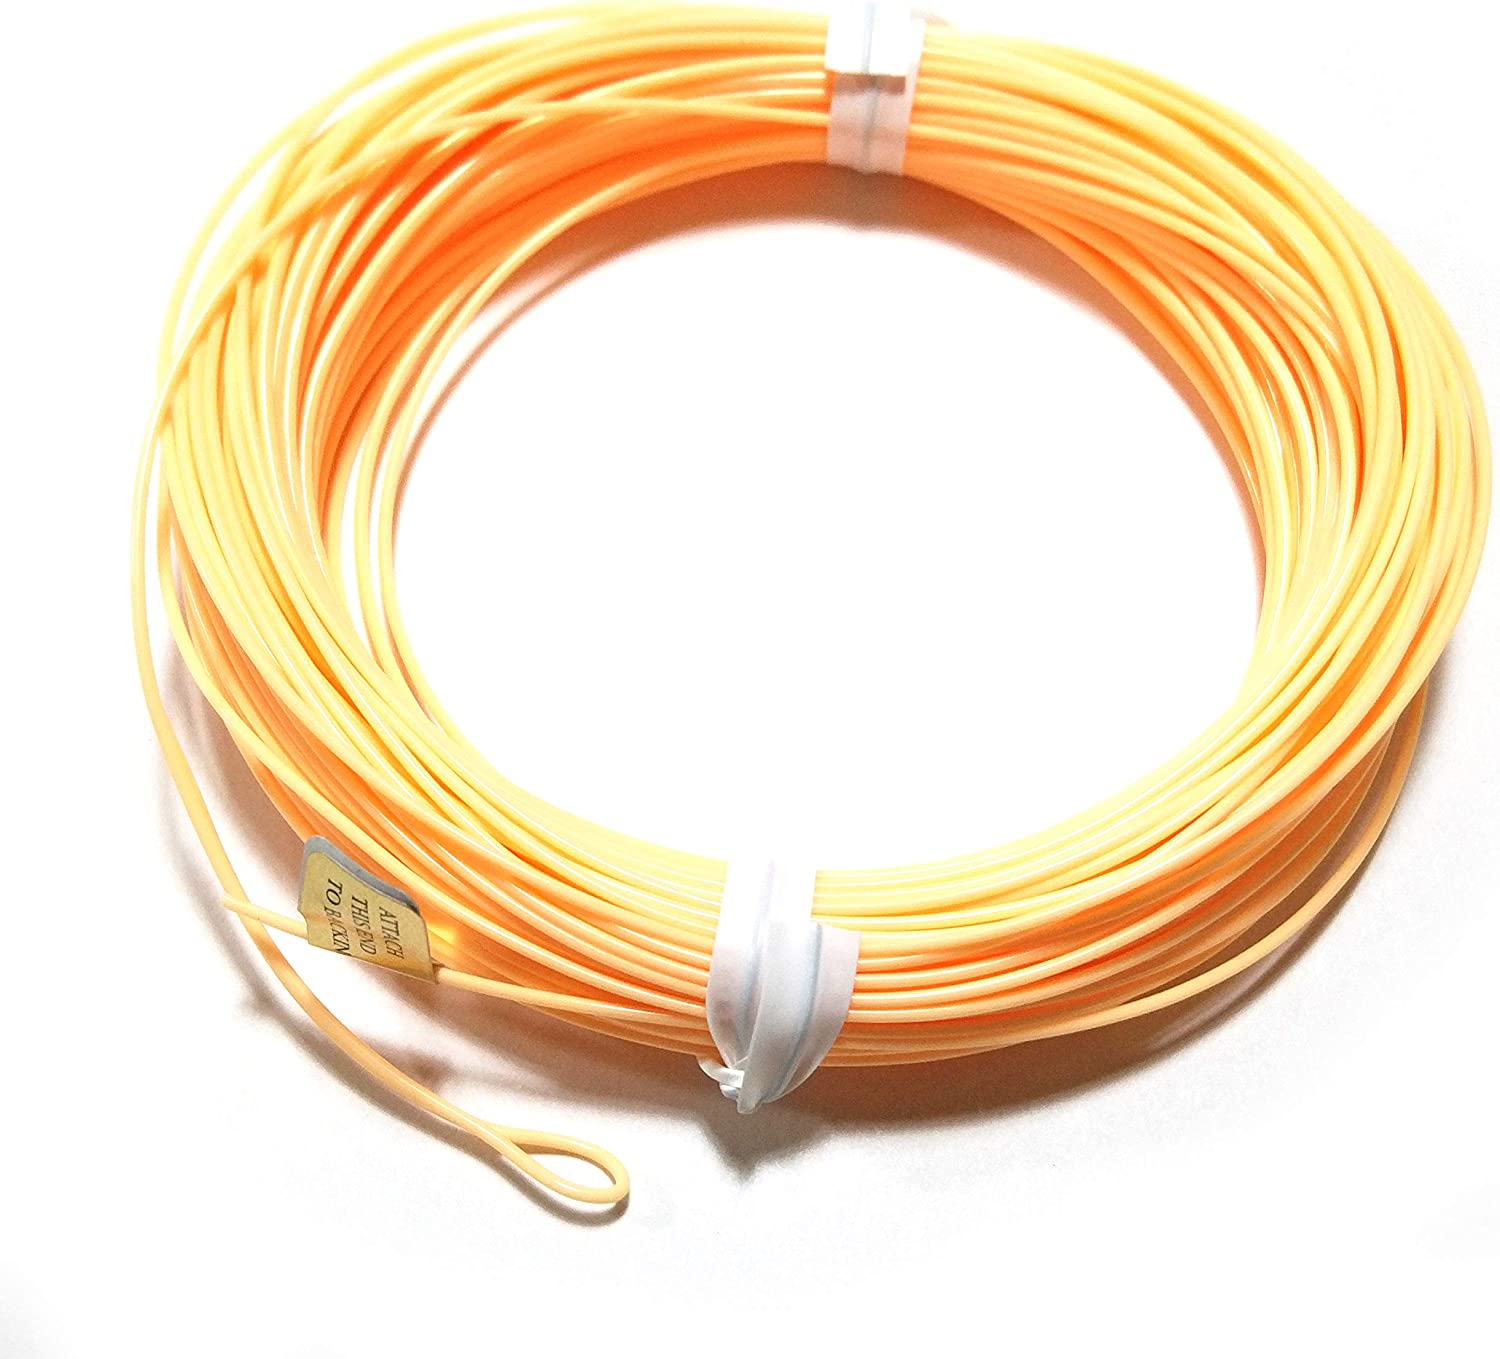 Cortland 444 Classic Peach Fly Line DT3F FREE FAST SHIPPING